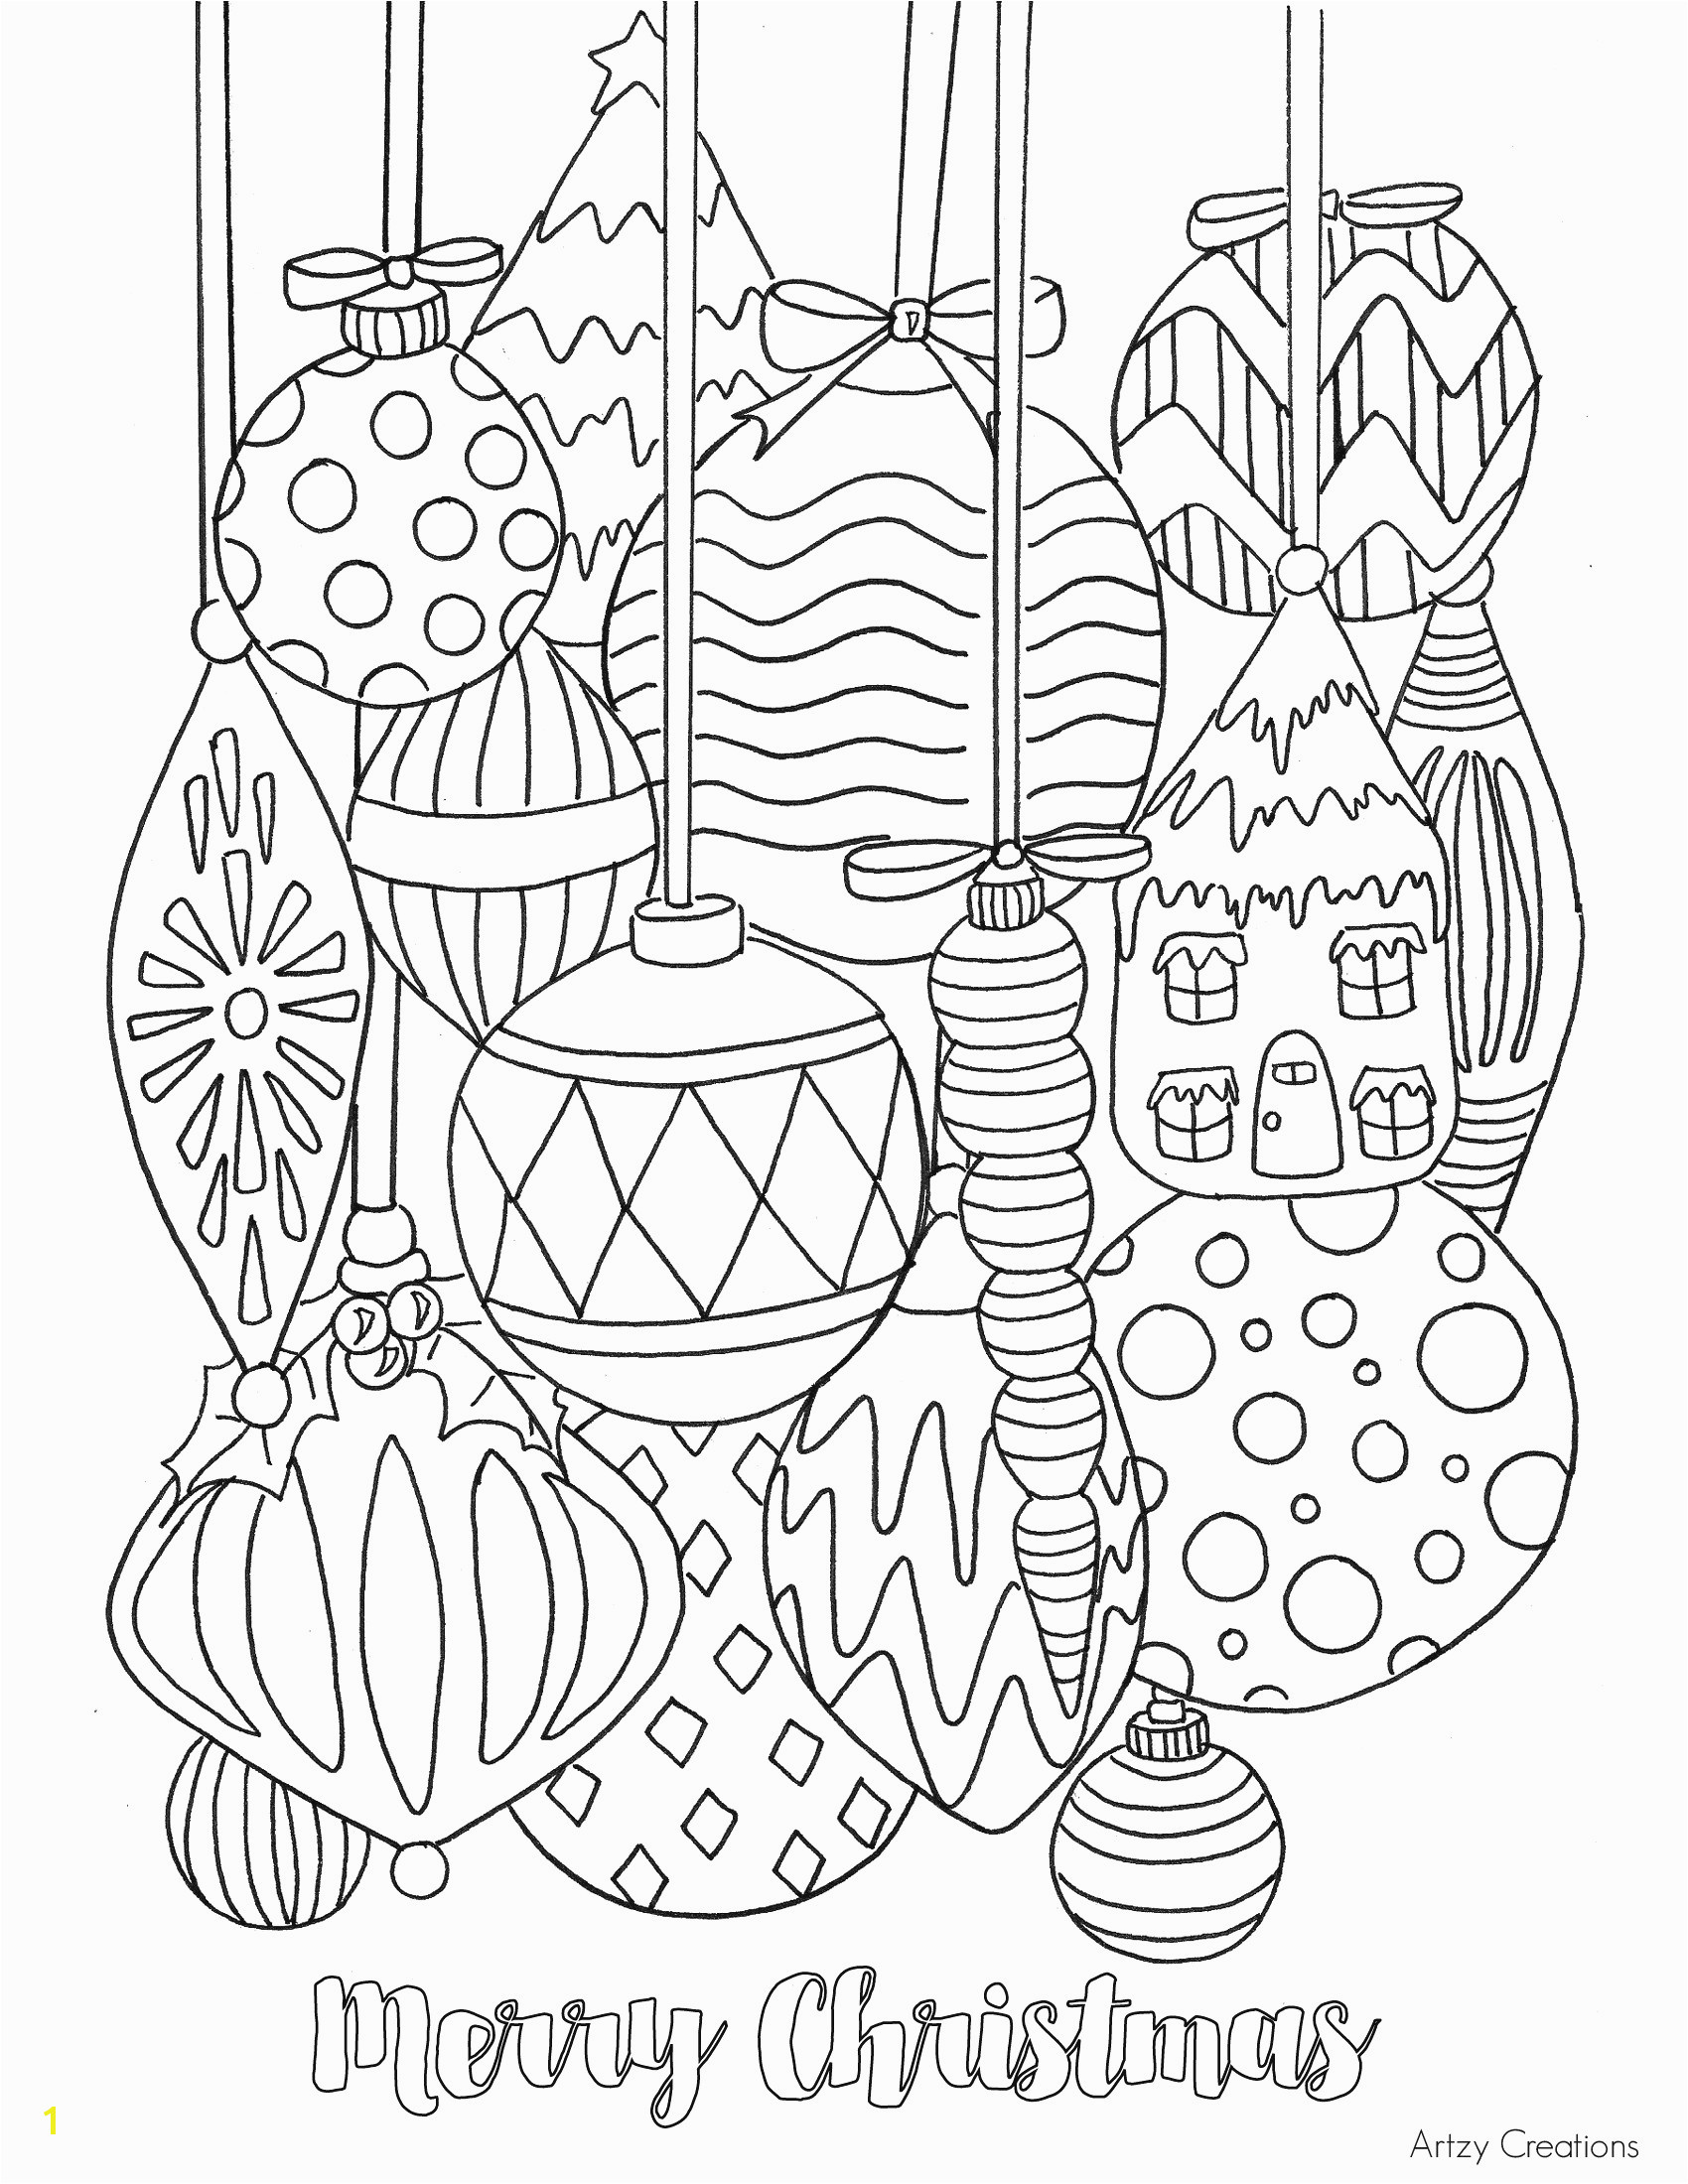 Christmas Printable Coloring Pages for Adults Christmas Coloring Pages Printable Free Elegant Best Page Adult Od